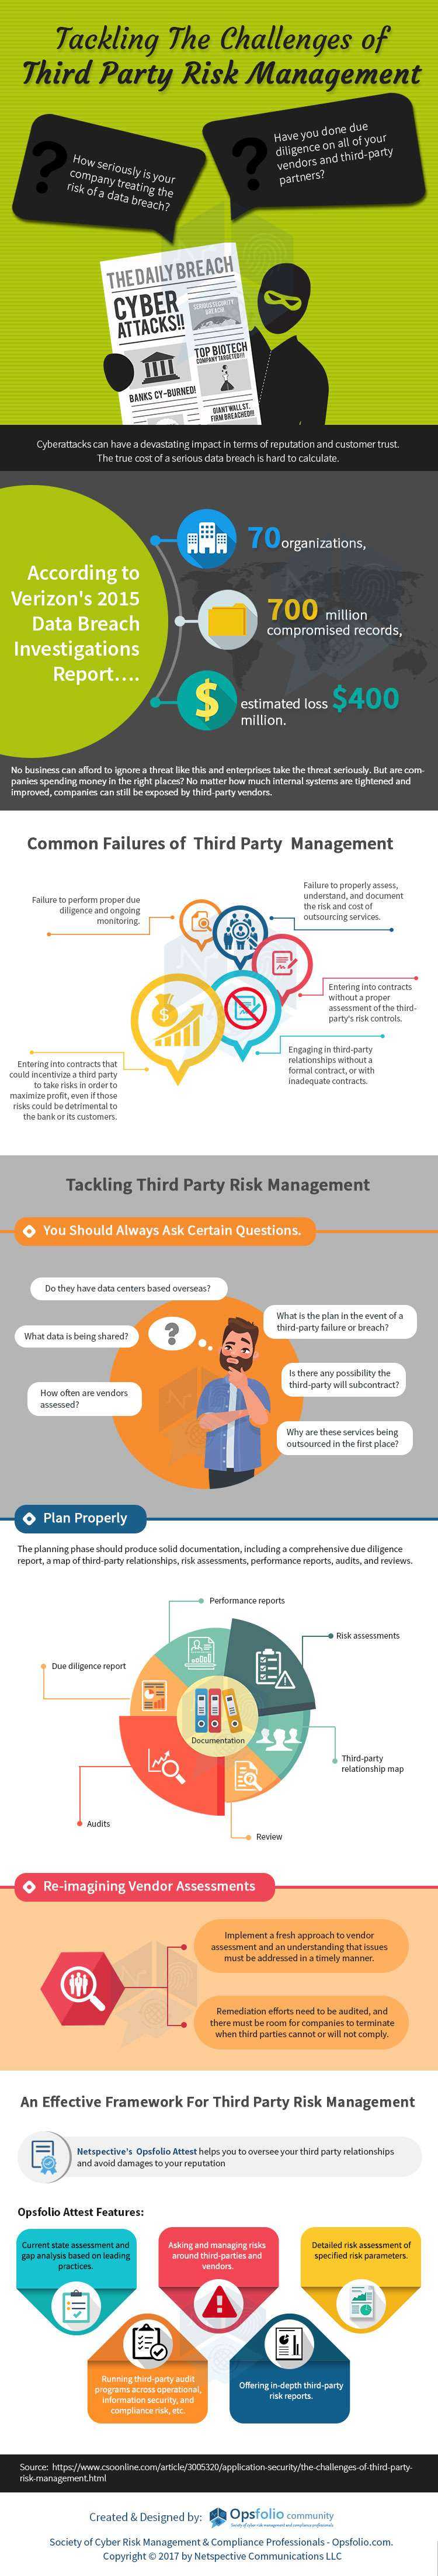 Tackling the Challenges of Third Party Risk Management